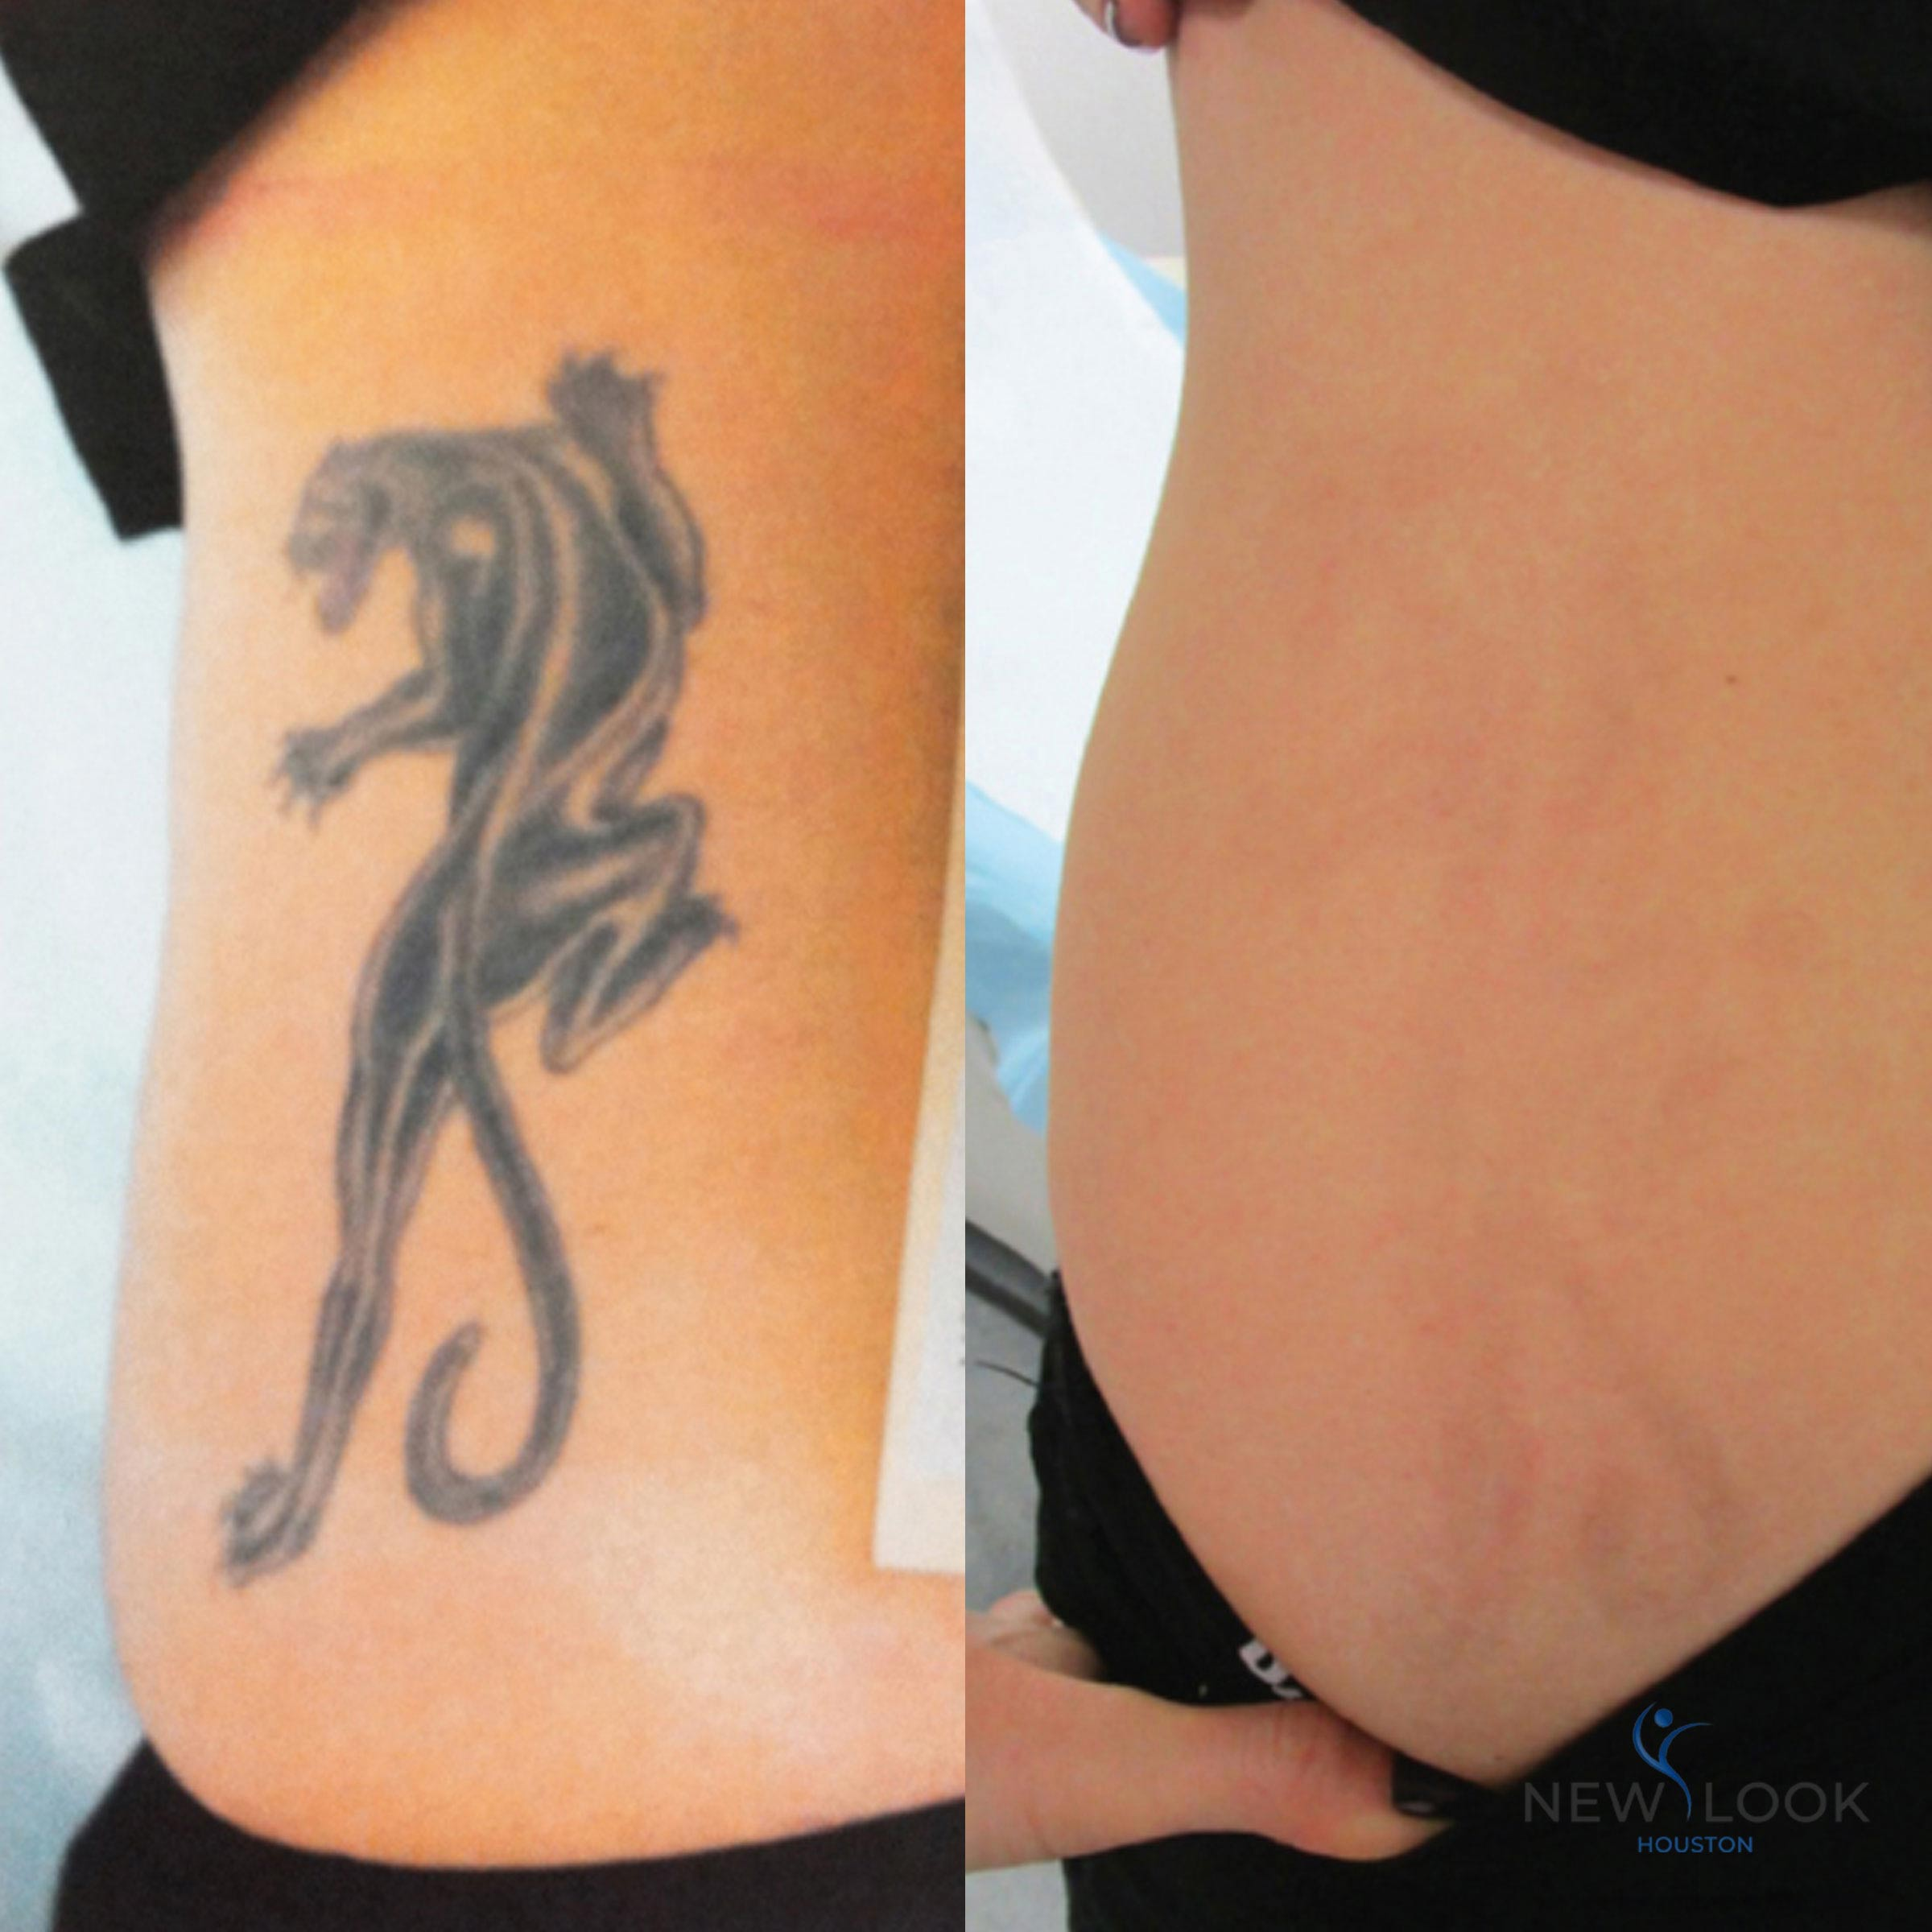 Big Color Tattoo Removal